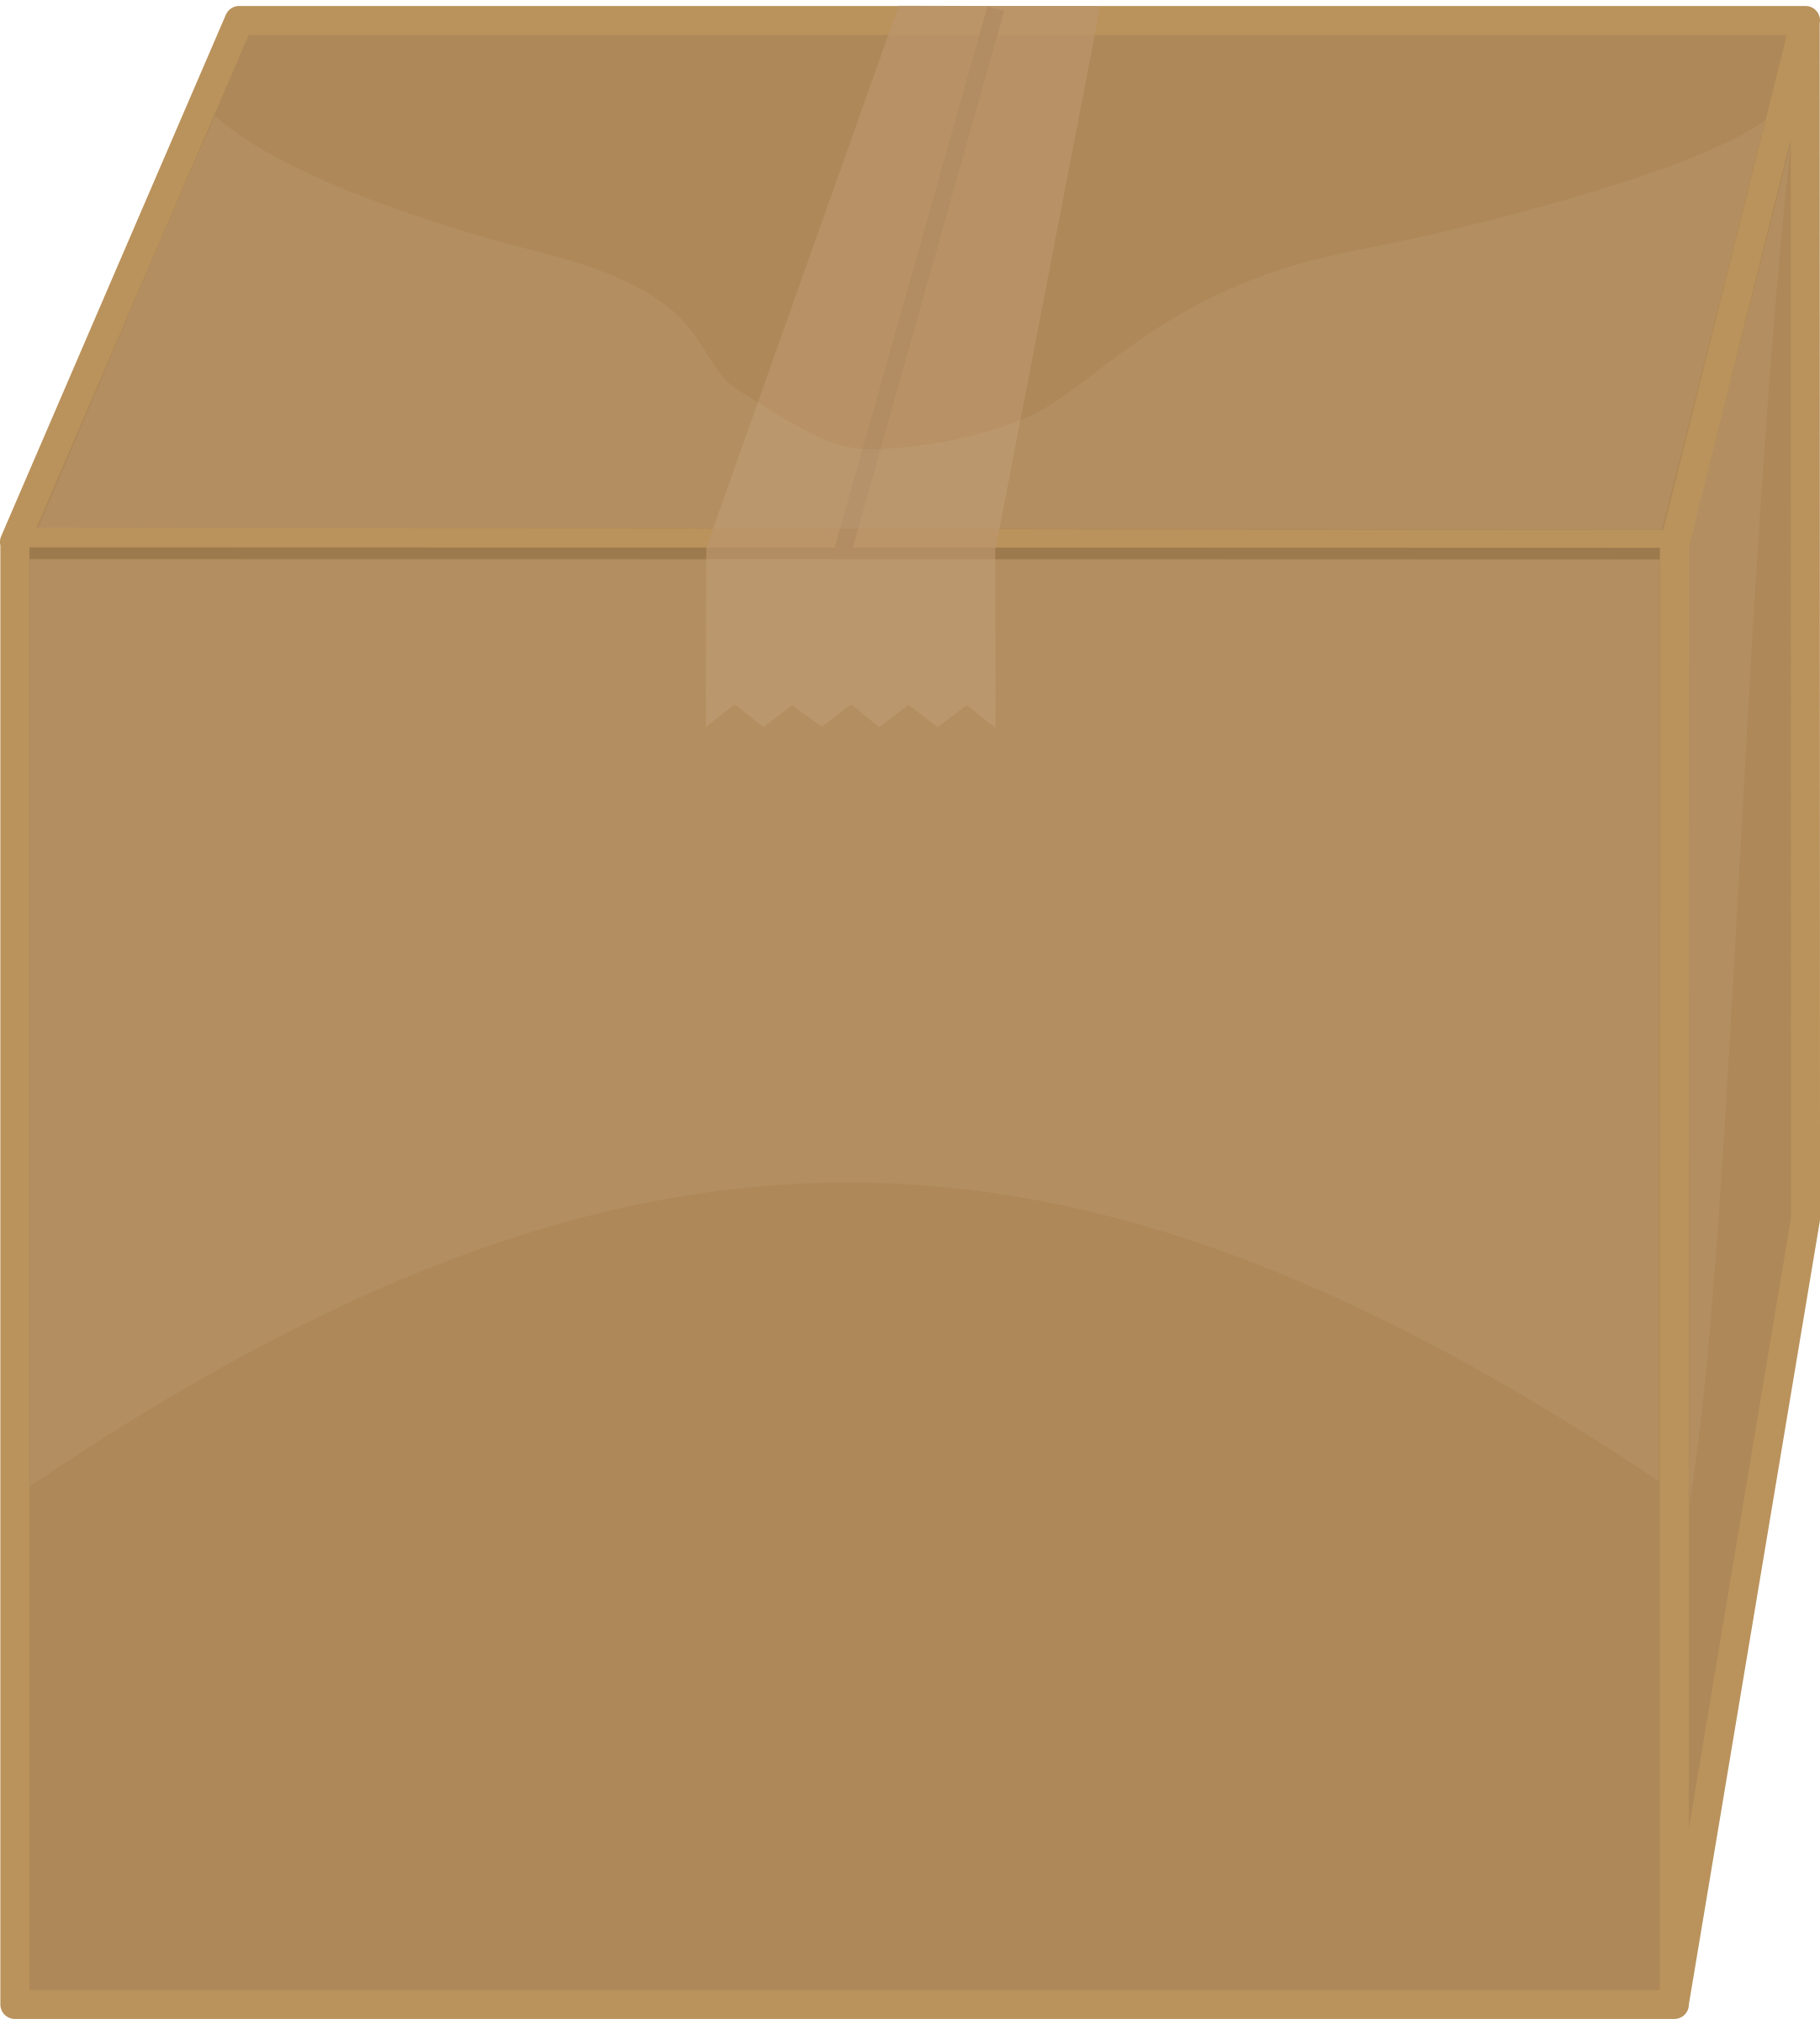 closed-cardboard-box-clipart-clipart-cardboard-box-lGi5Ah-clipart.png